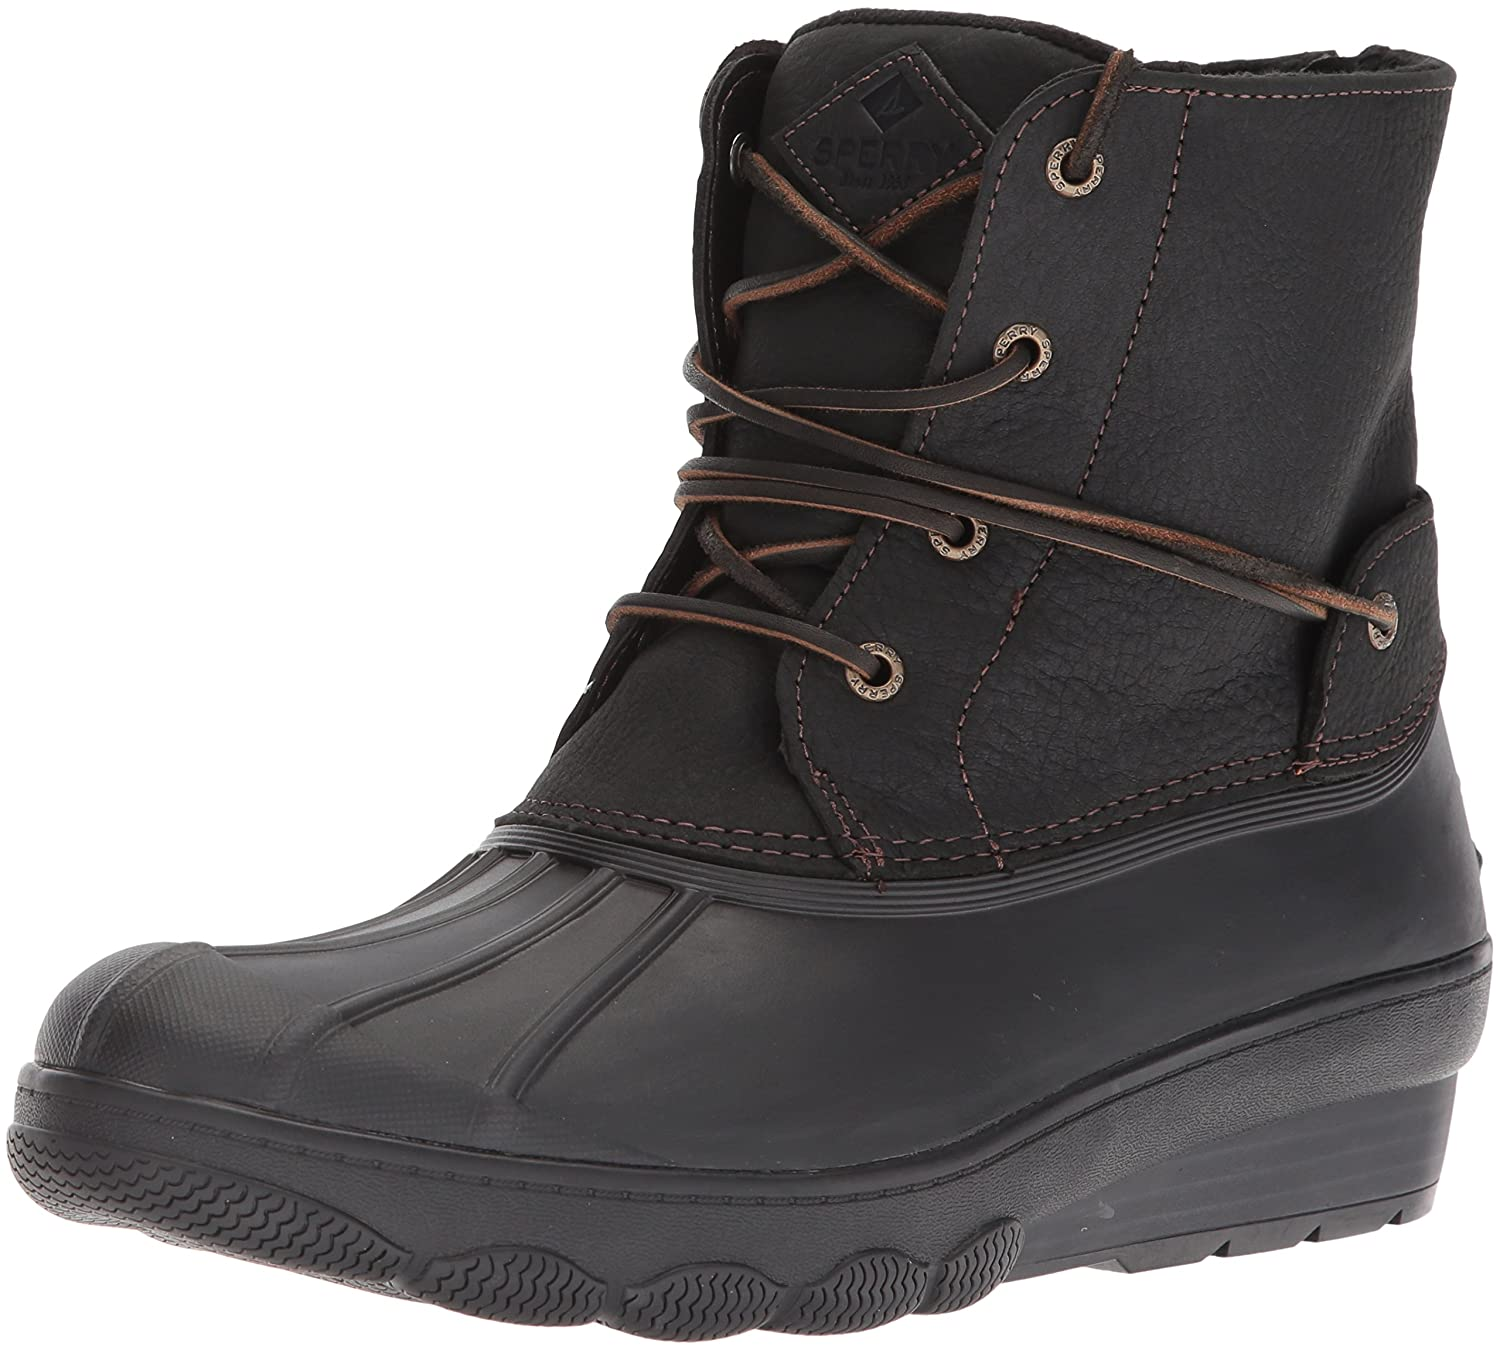 Sperry Top-Sider Women's Saltwater Wedge Tide Rain Boot B07B8GS4GV 6 B(M) US|Black